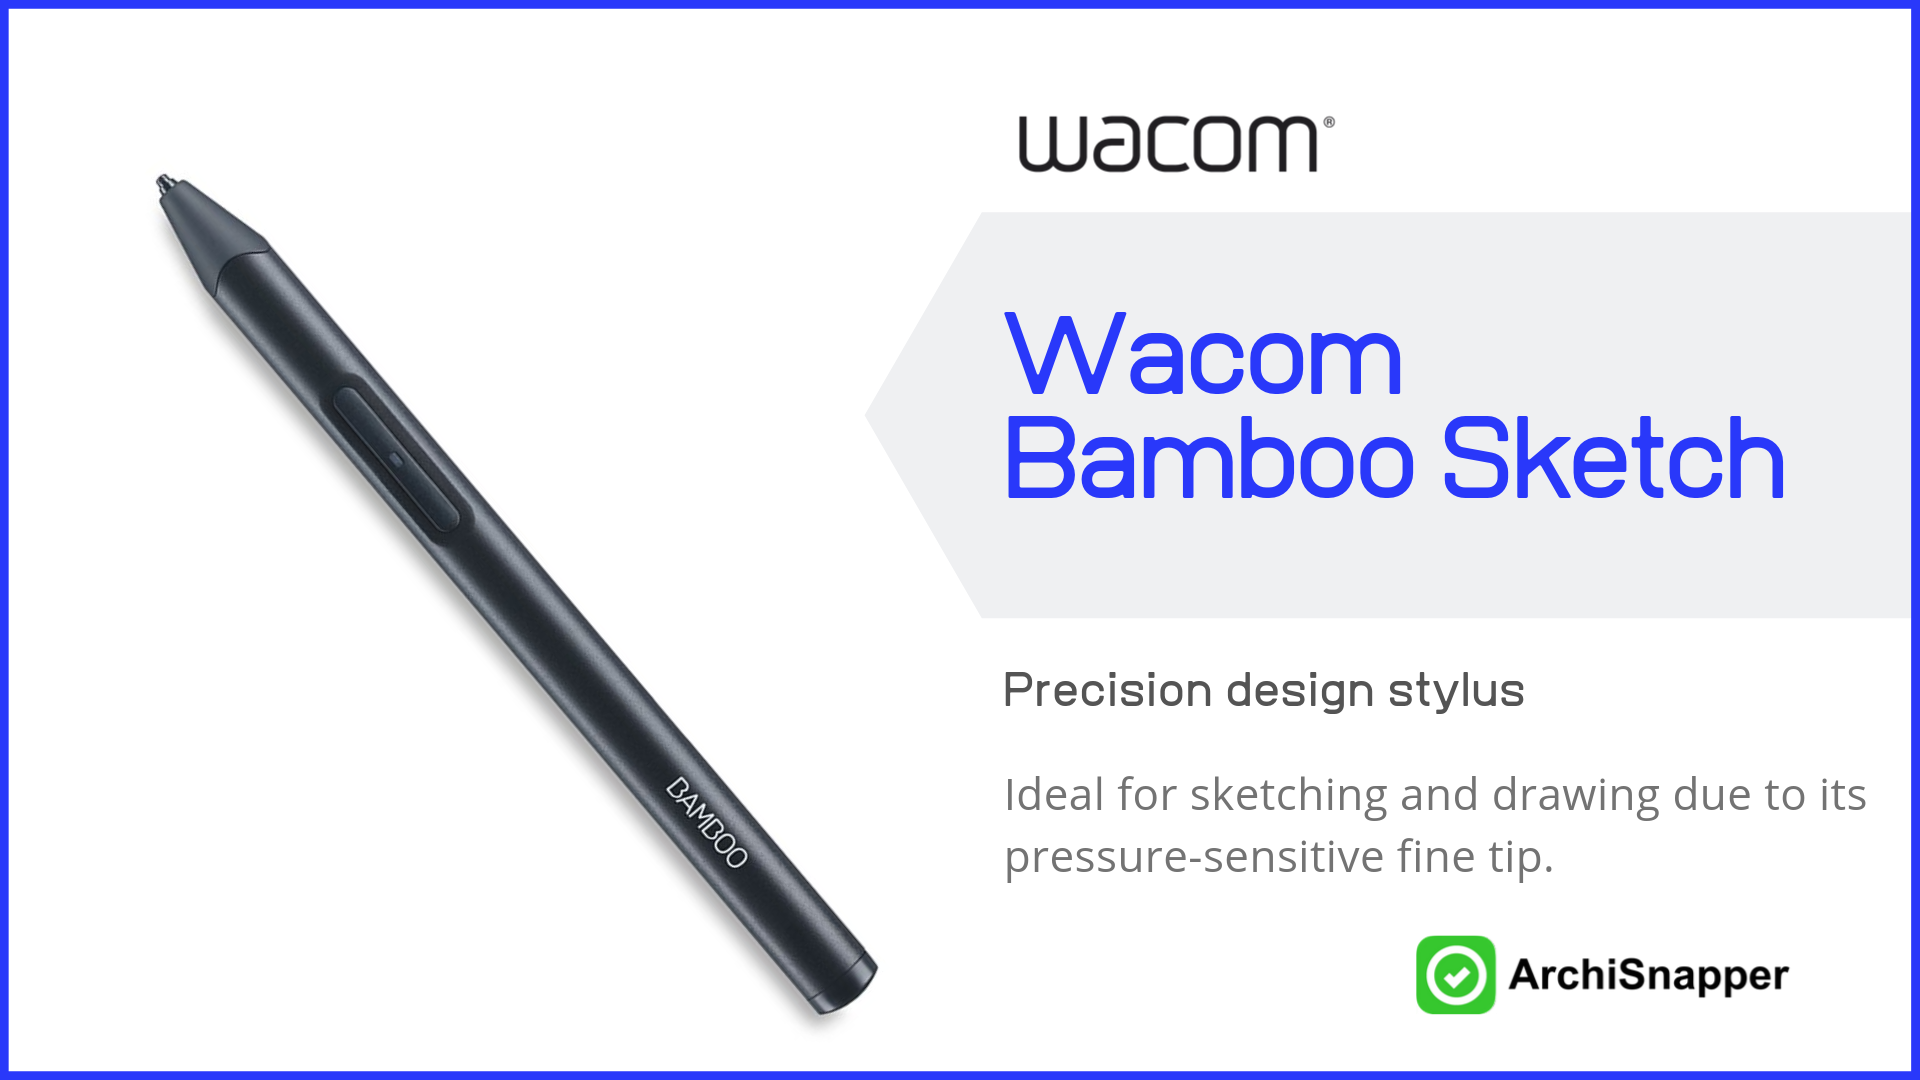 Wacom Bamboo Stylus | Top Tech for Architects Presented by Archisnapper.